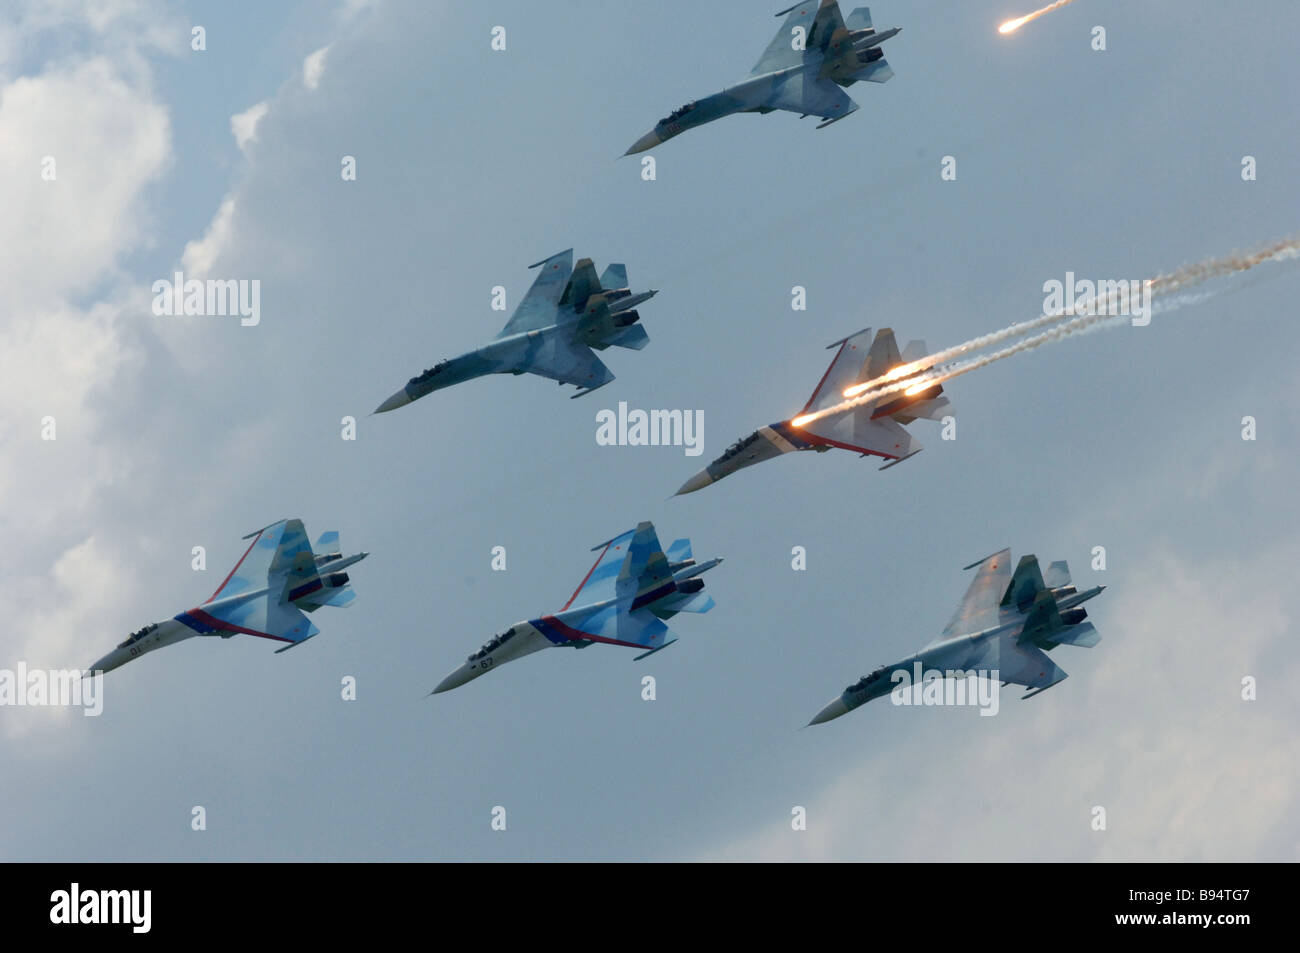 Six SU 27SM fighters of Aircrew Training School 4 Lipetsk performing a group flight at the 5th International Exhibition - Stock Image